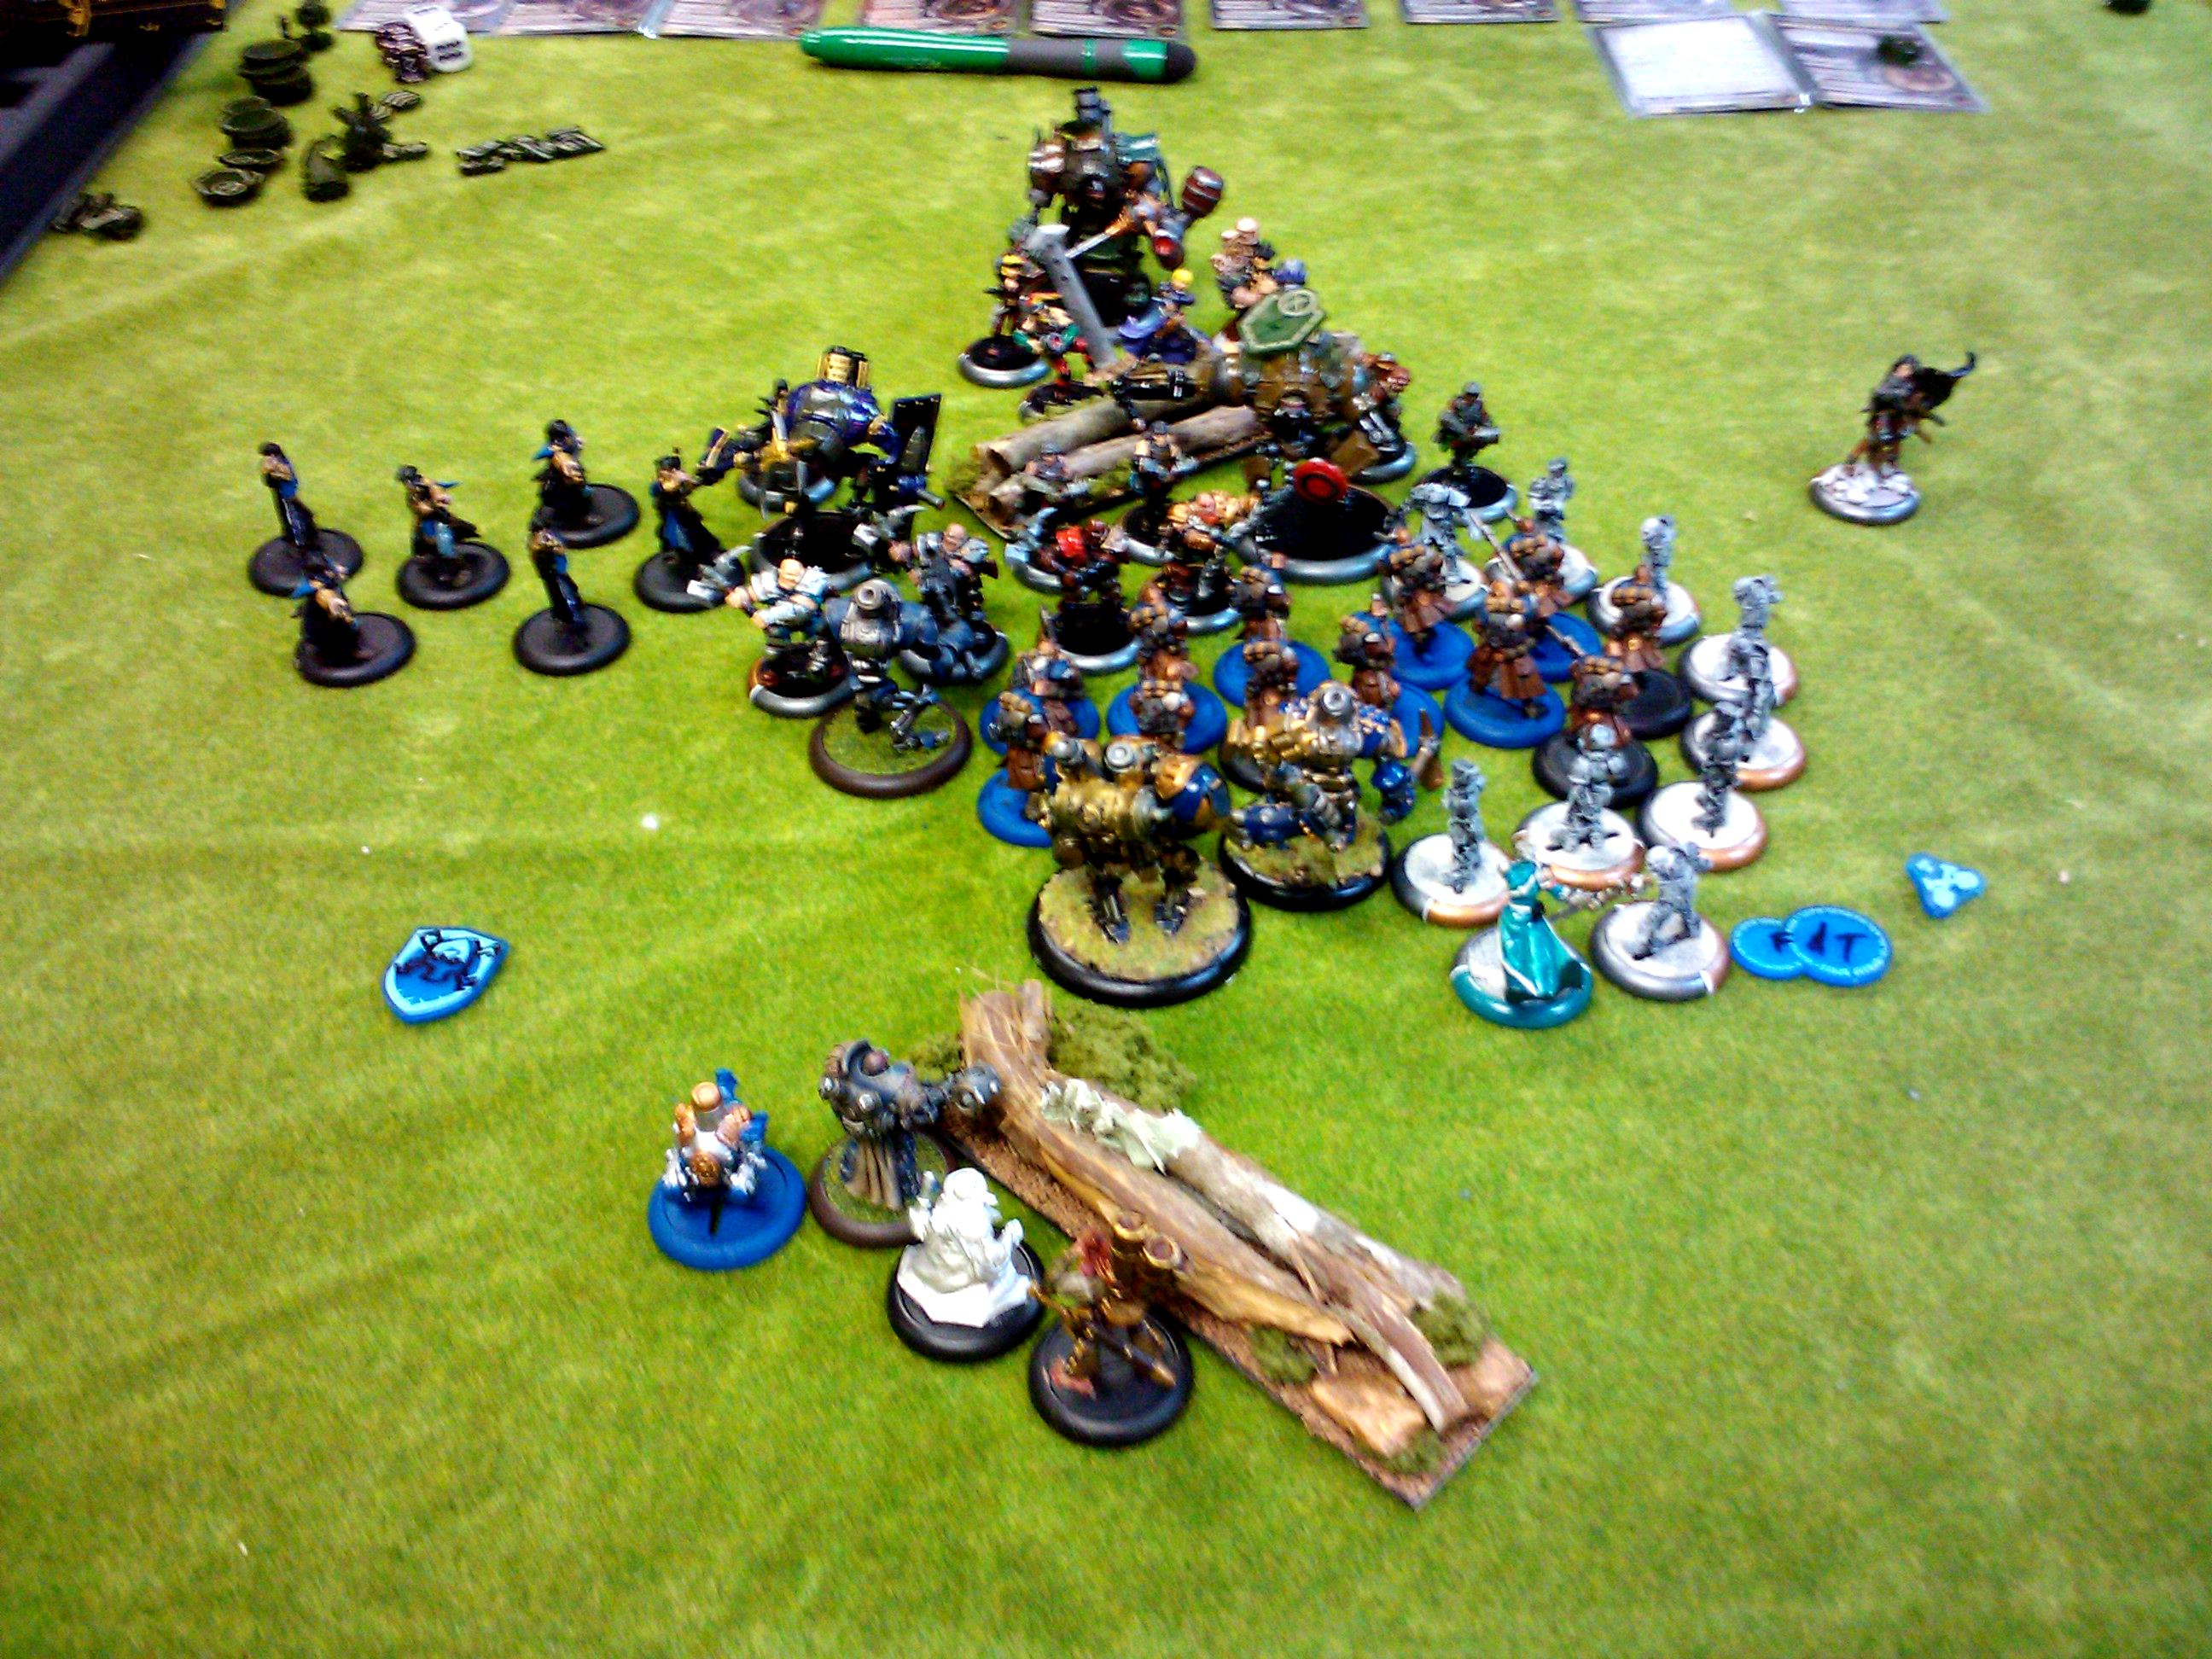 Battle Box, Battle Group, Circle, Circle Of Orobos, Cygnar, Design, Game, Hordes, Khador, Mercenary, Orobos, Painting, Privateer Press, Protectorate Of Menoth, Retribution, Table Top, Tabletop, Troll, War Caster, War Game, War Jack, War Pack, Warcaster, Wargame, Warjack, Warlock, Warmachine, Warpack